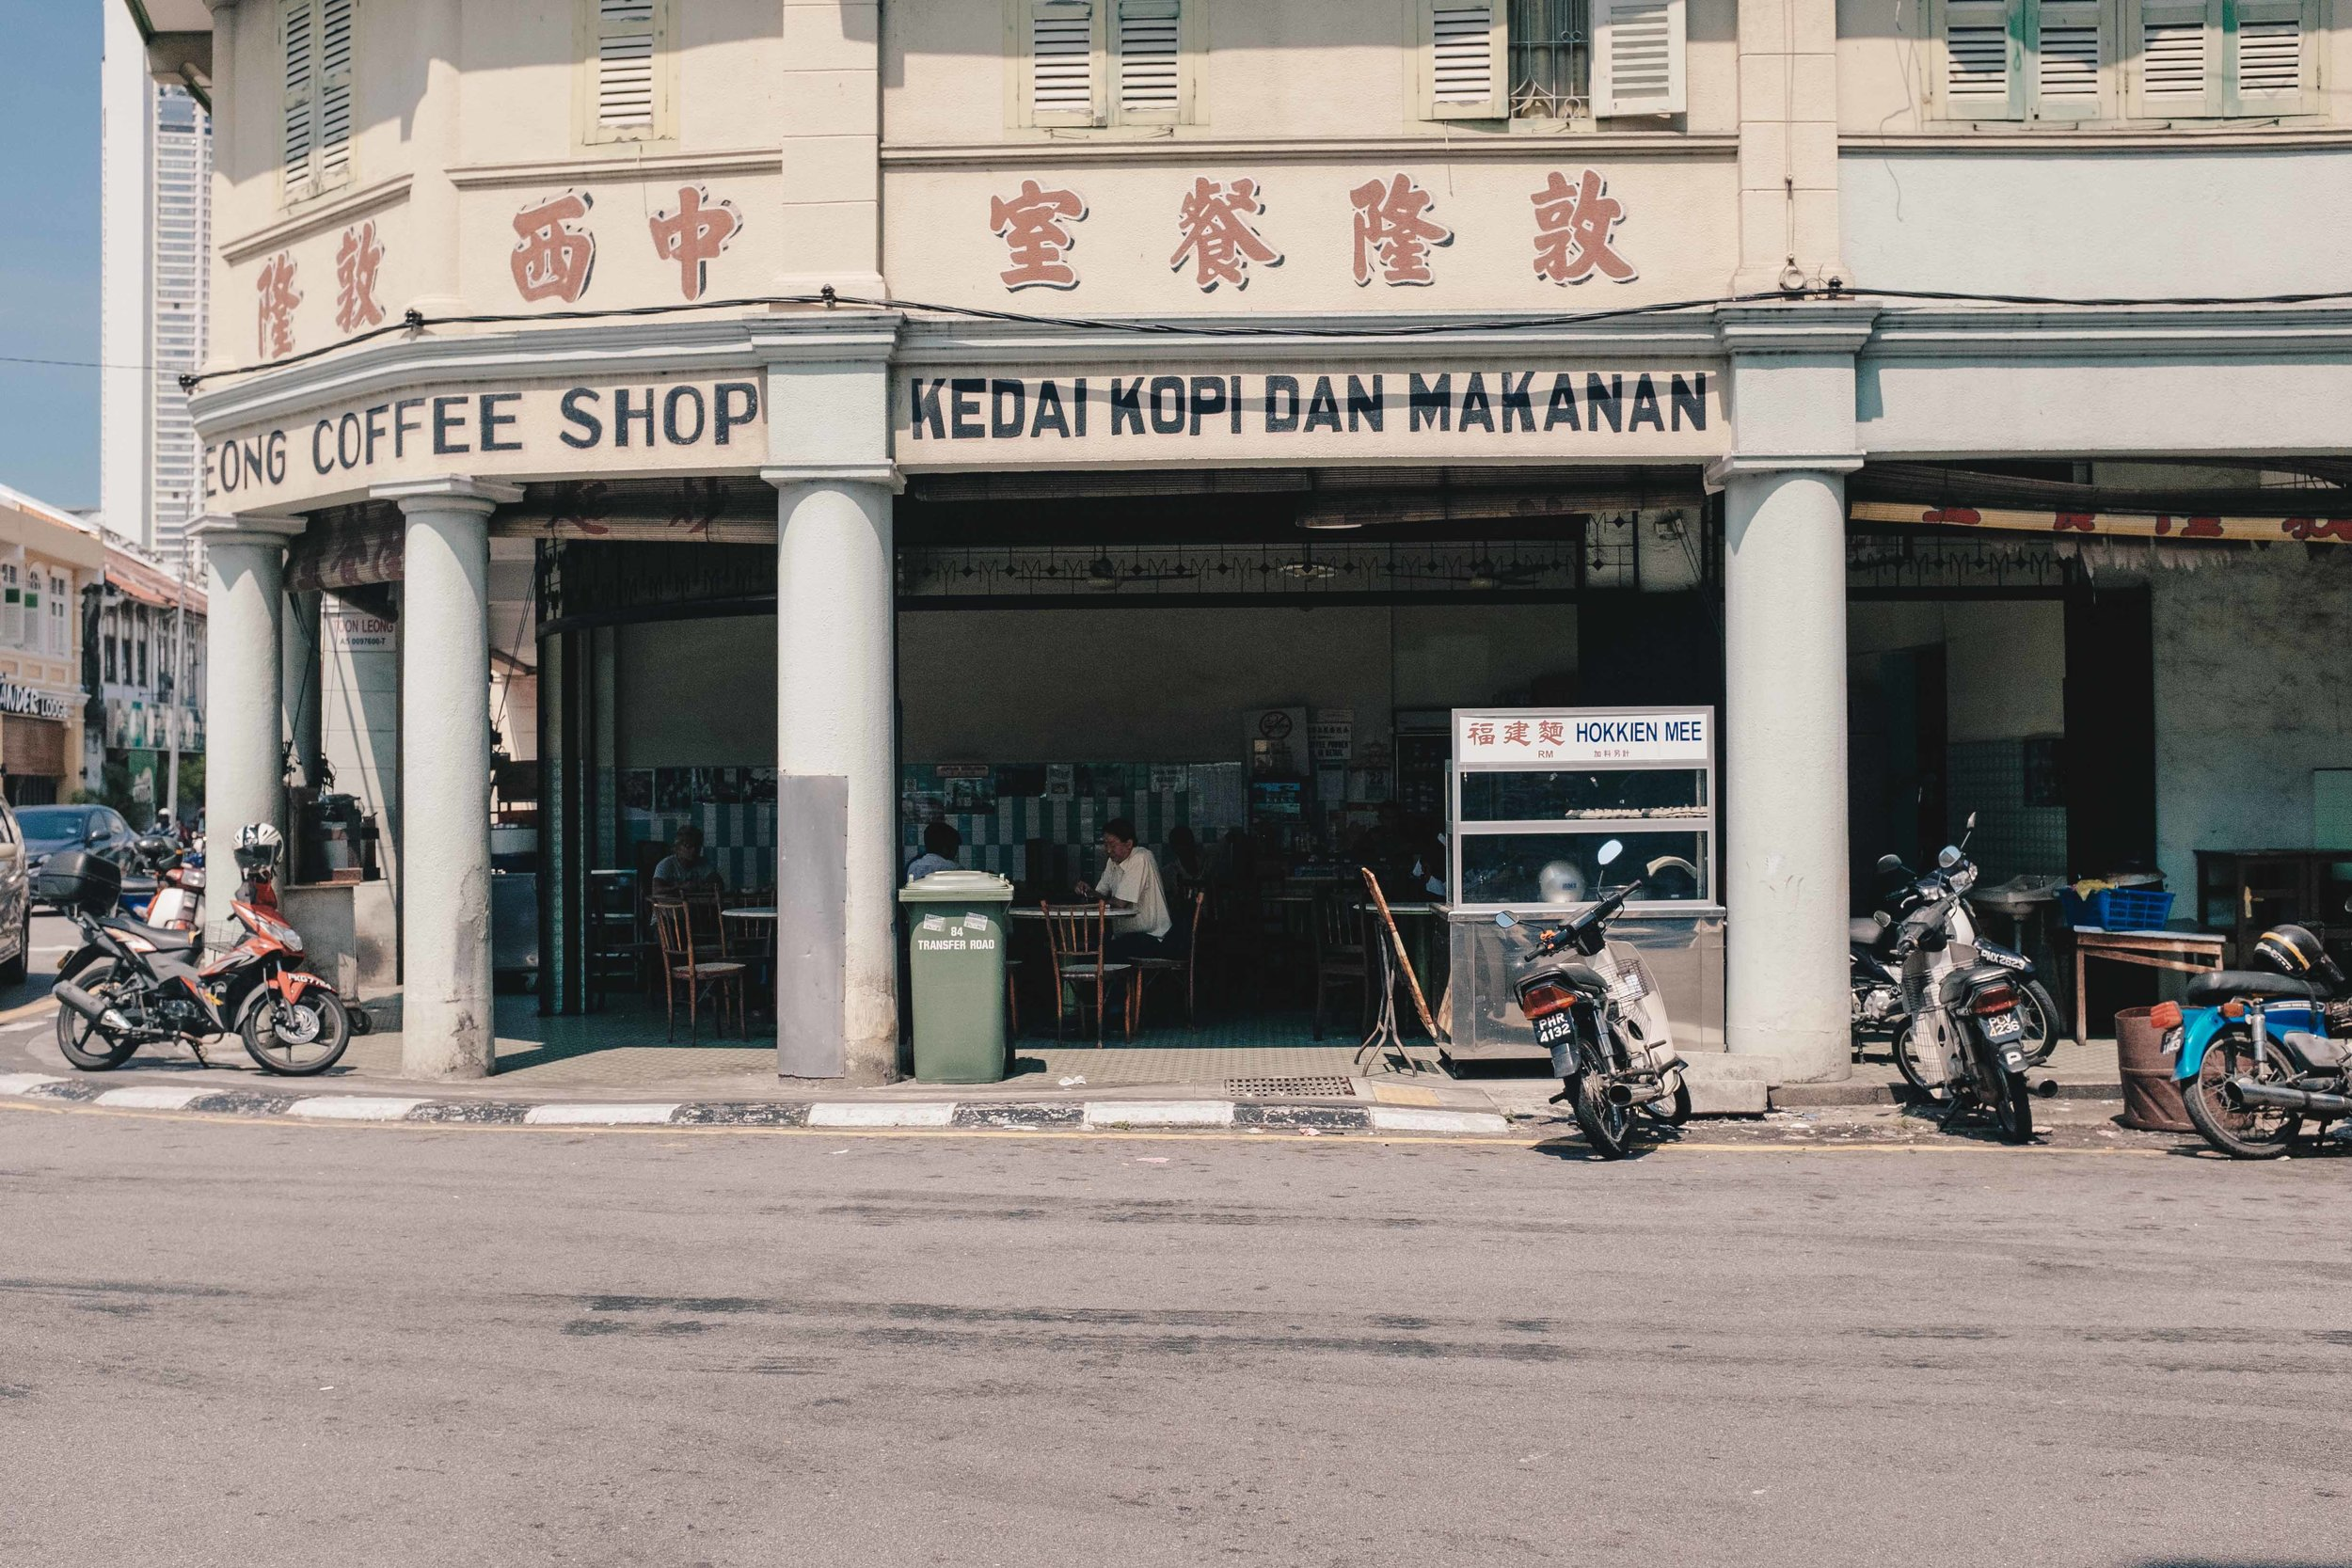 Toon Leong Coffee Shop is typical of the coffeeshops you'll find in Penang serving breakfast and lunch